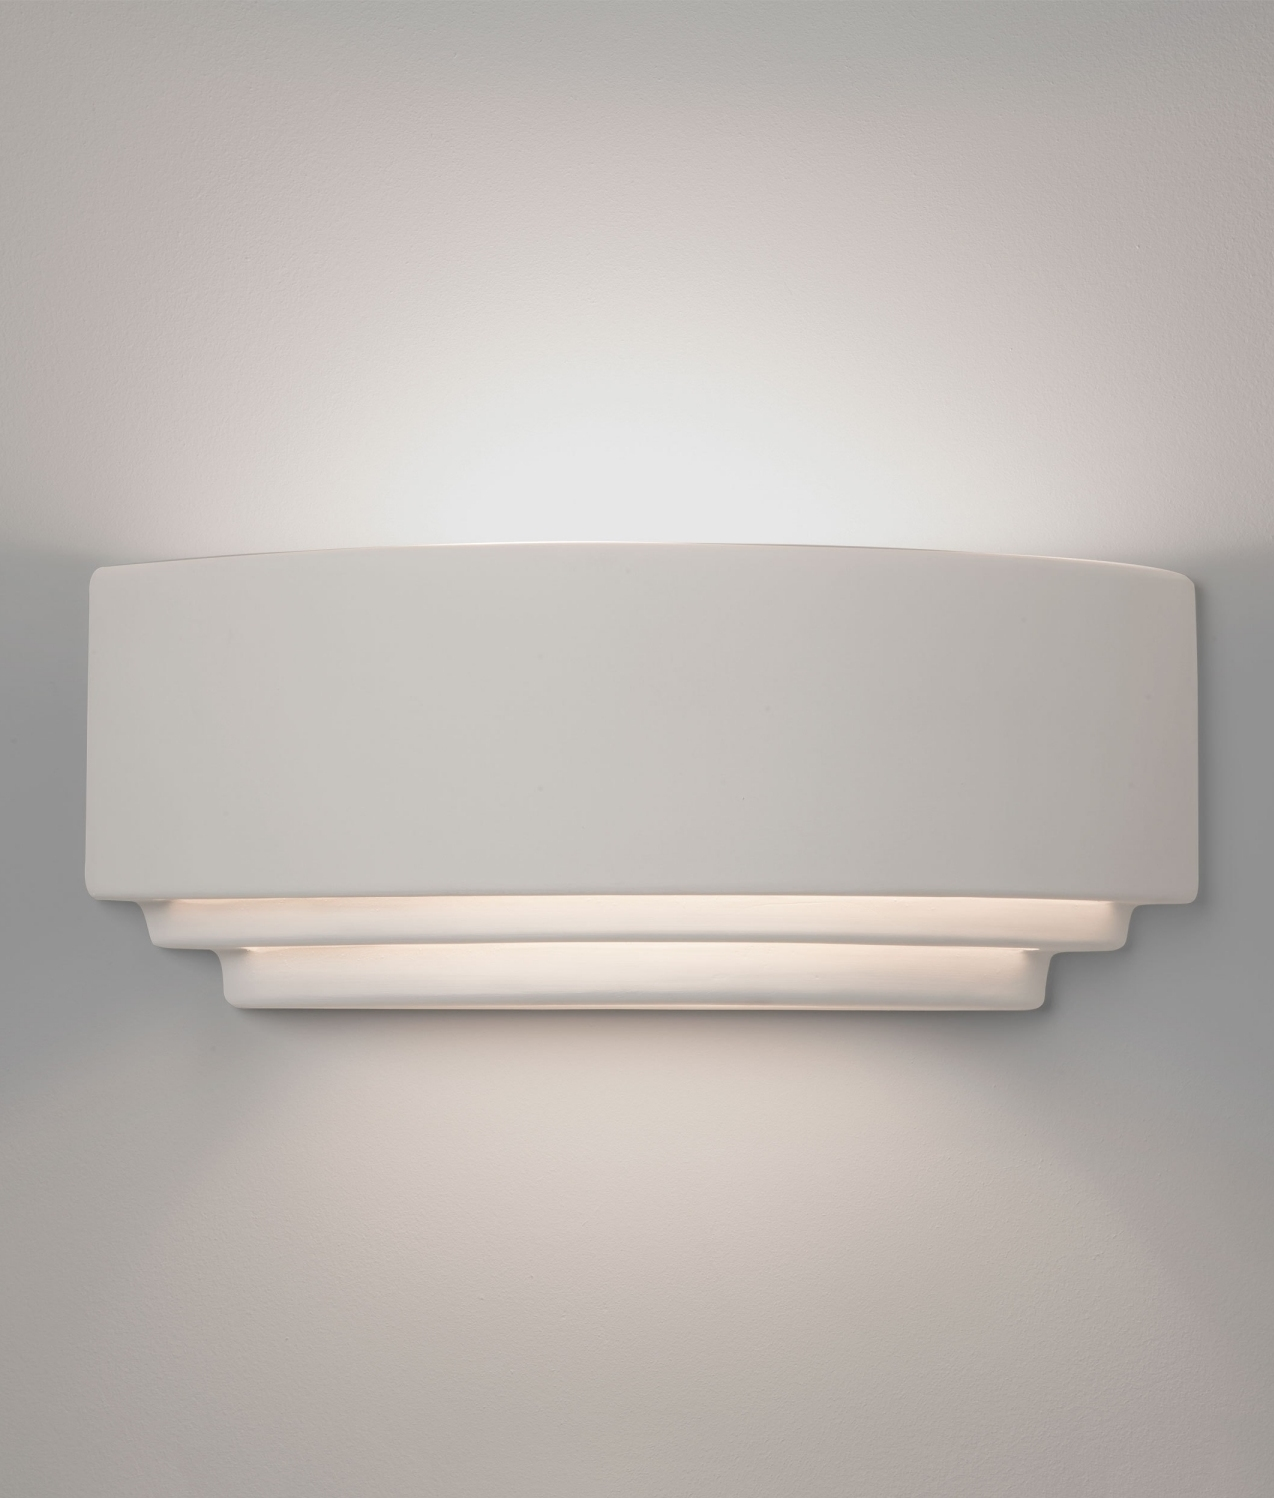 Ceramic Wall Light - W: 380mm